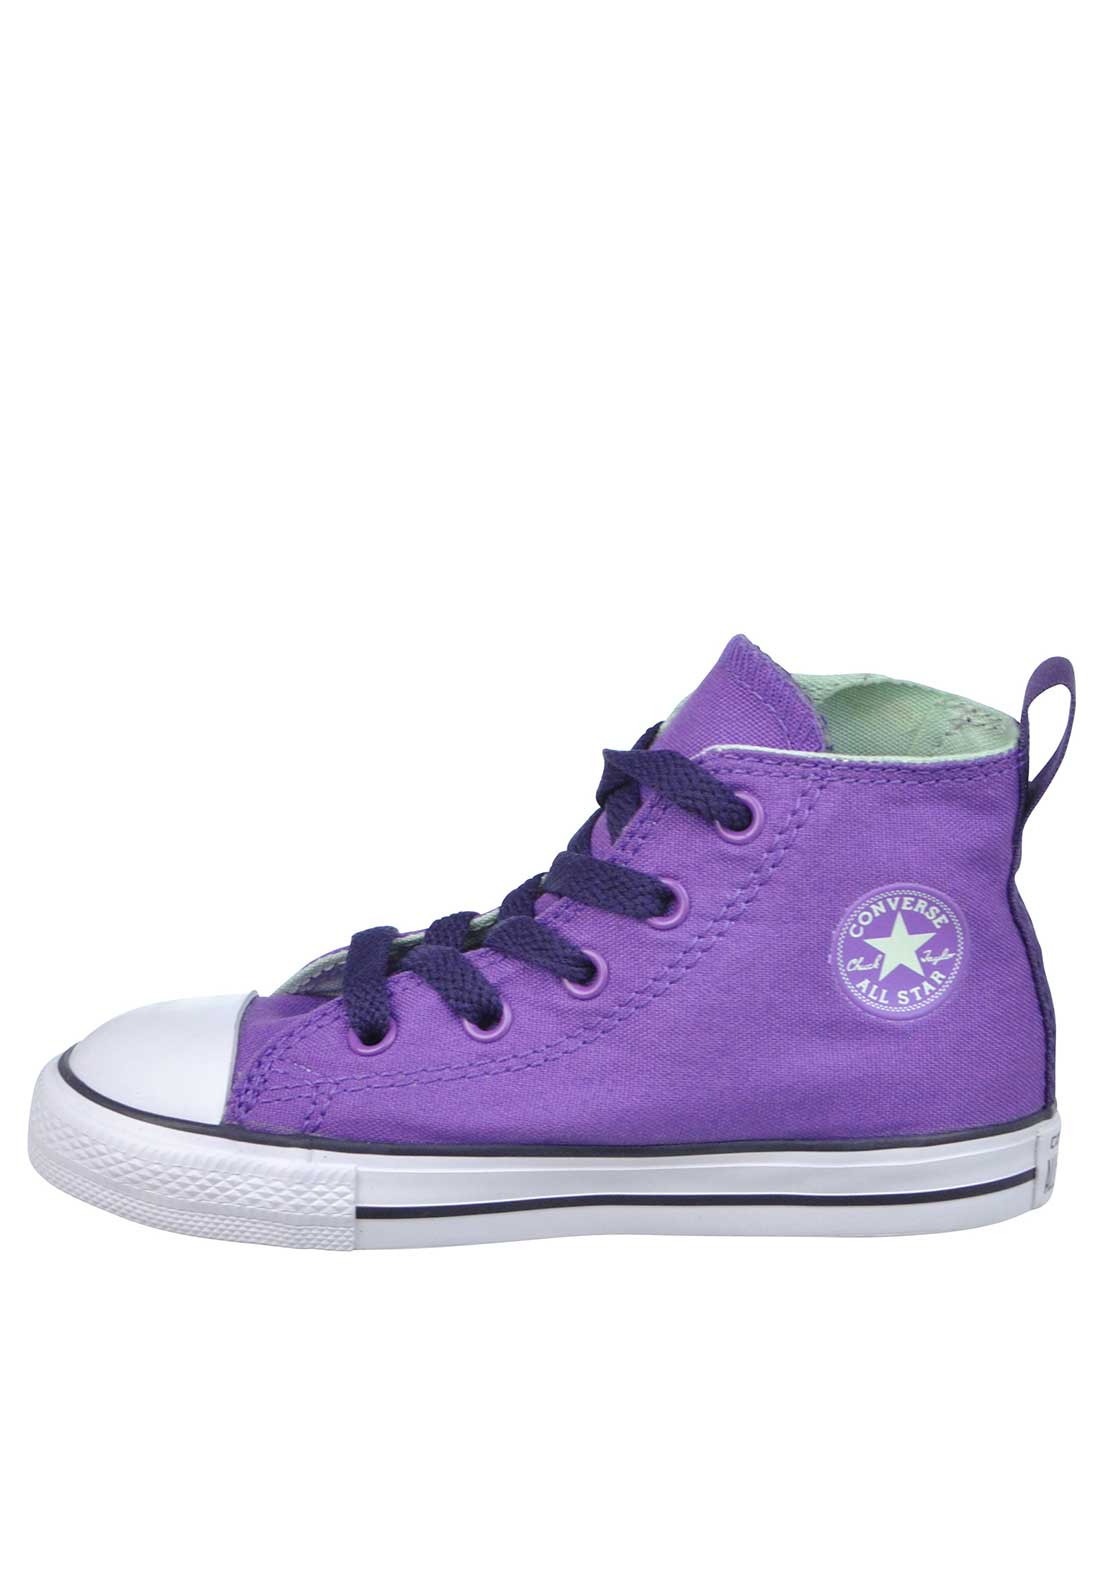 7907e0a5b536 Converse Baby Girls All Star Chuck Taylor Zip High Top Trainers ...